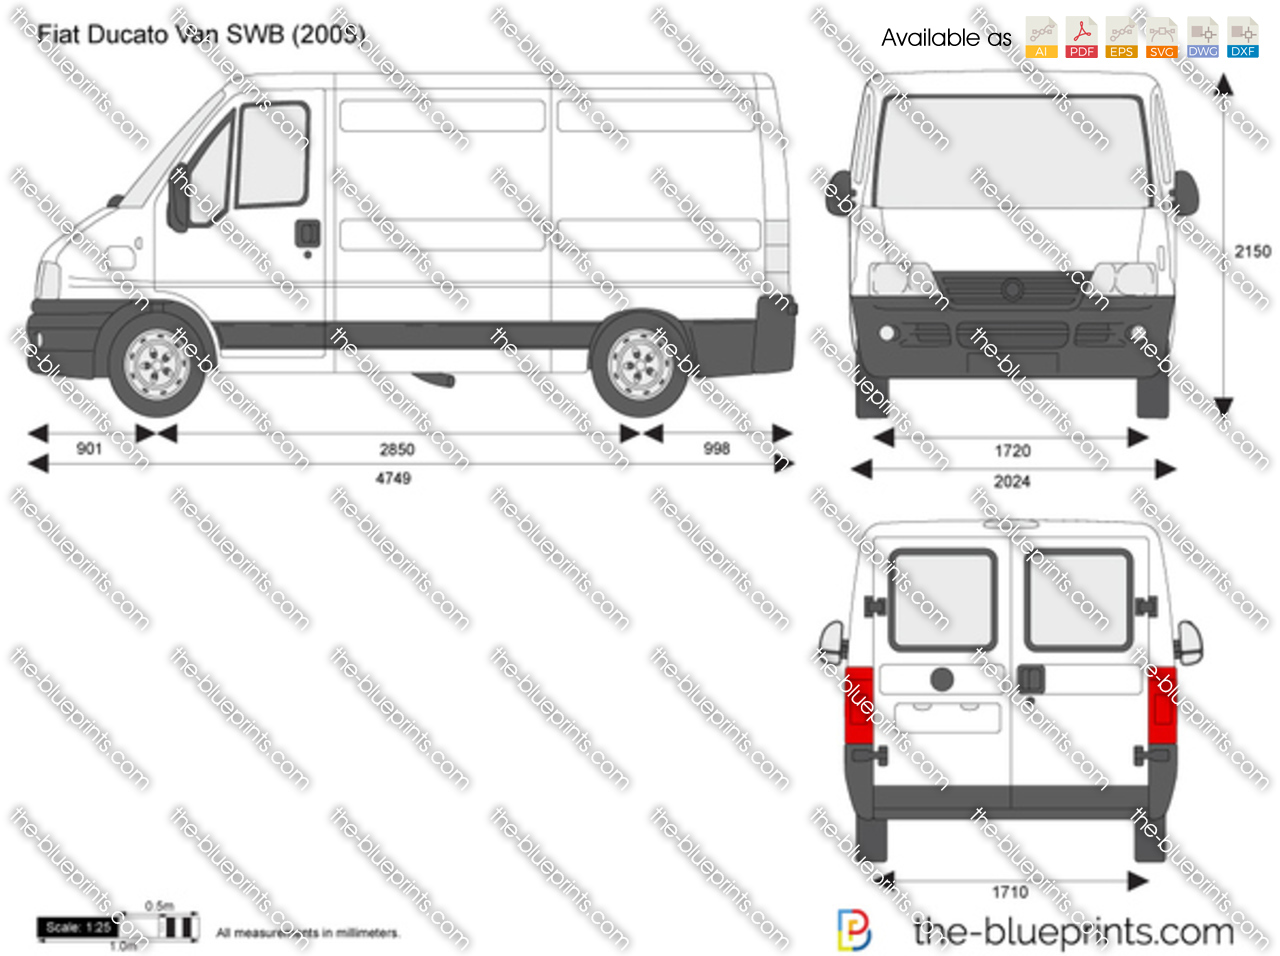 The Vector Drawing Fiat Ducato Van Swb